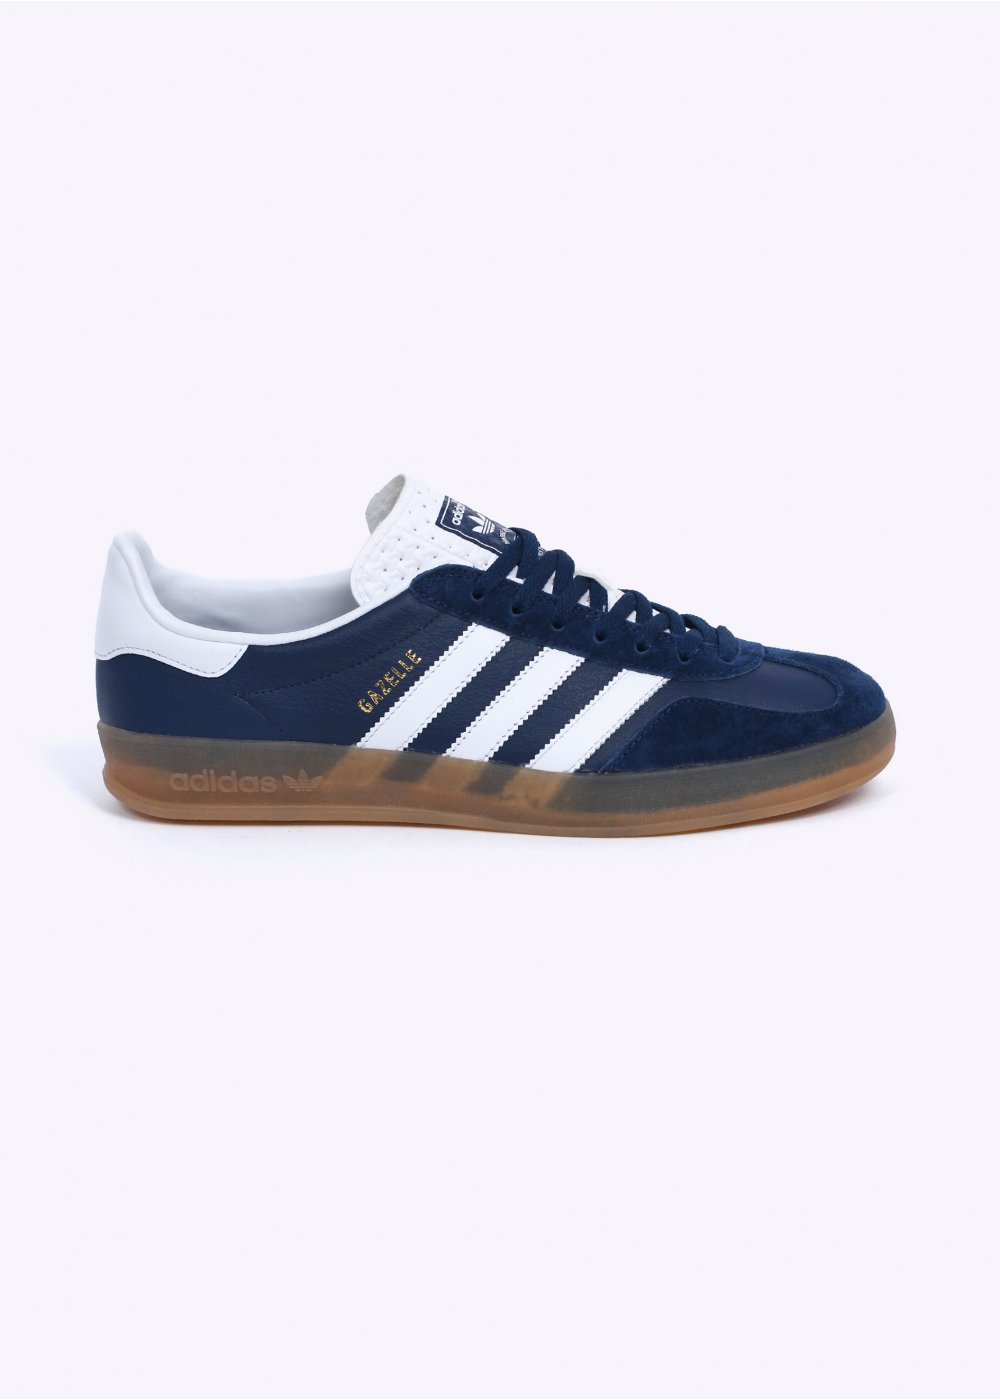 adidas Originals Gazelle Indoor Trainers - Oxford Blue   White   Gum f9c1db57f